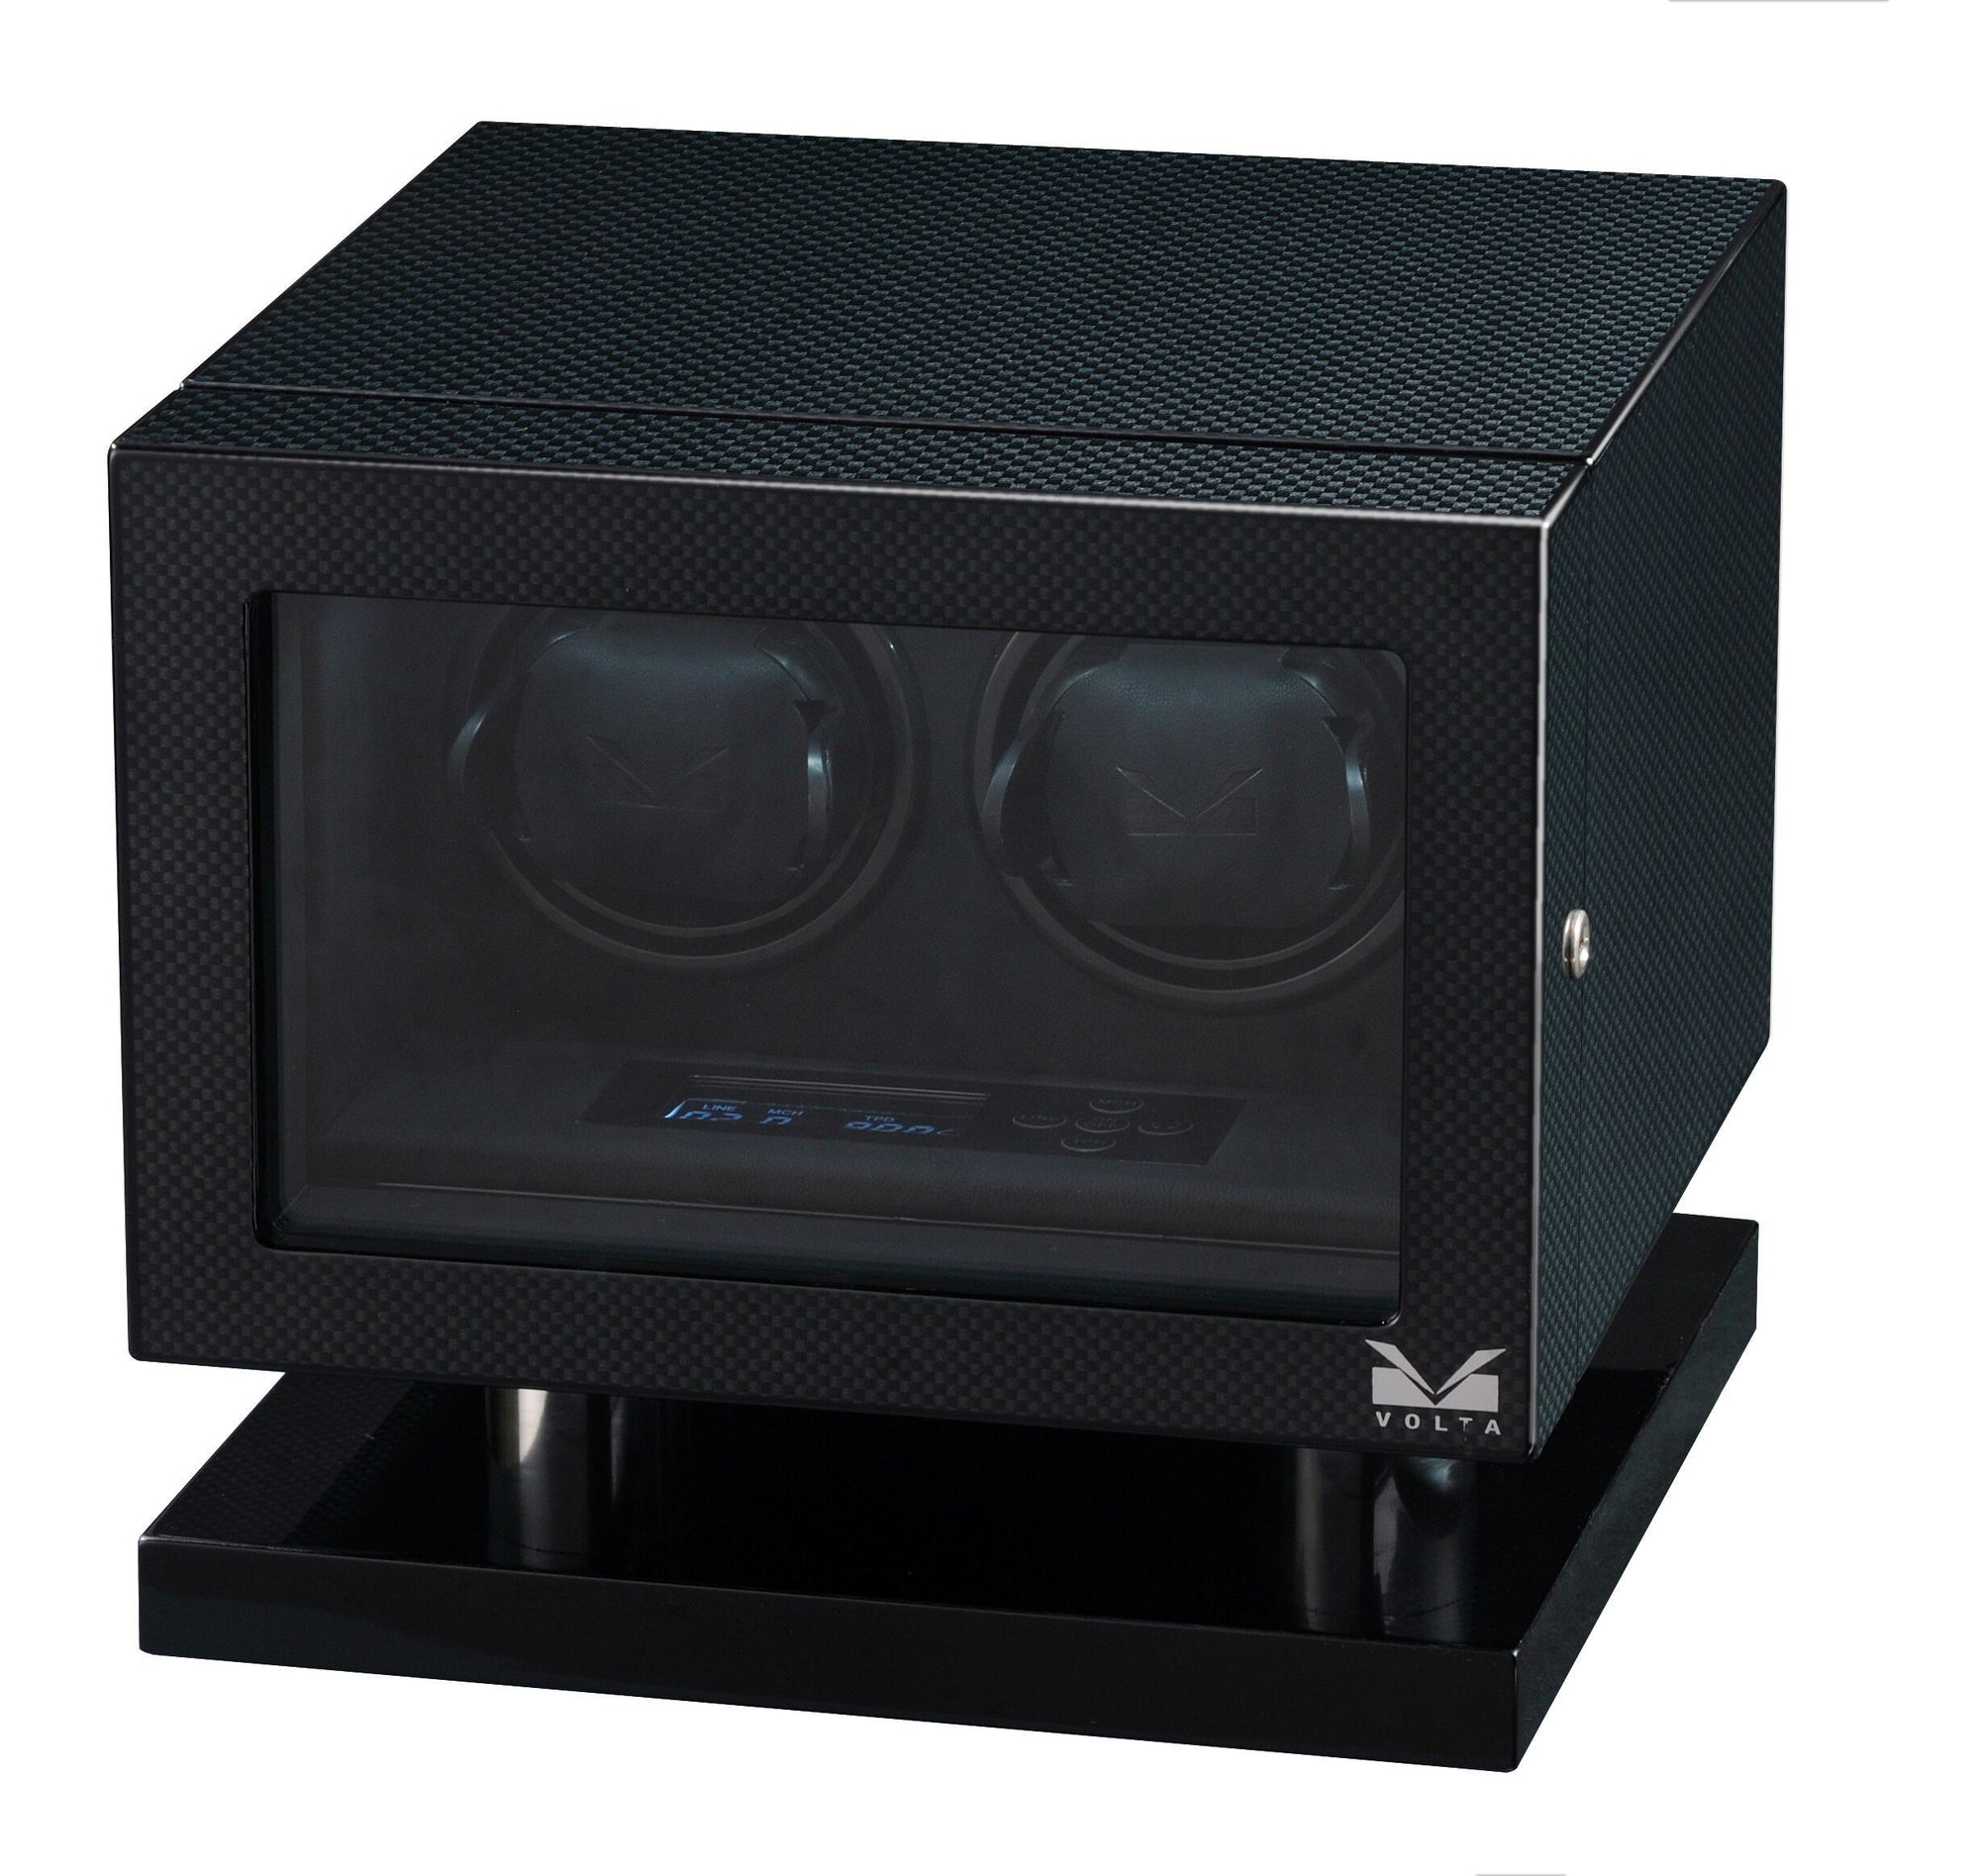 Volta - 31560020 Double Watch Winder Carbon Fiber